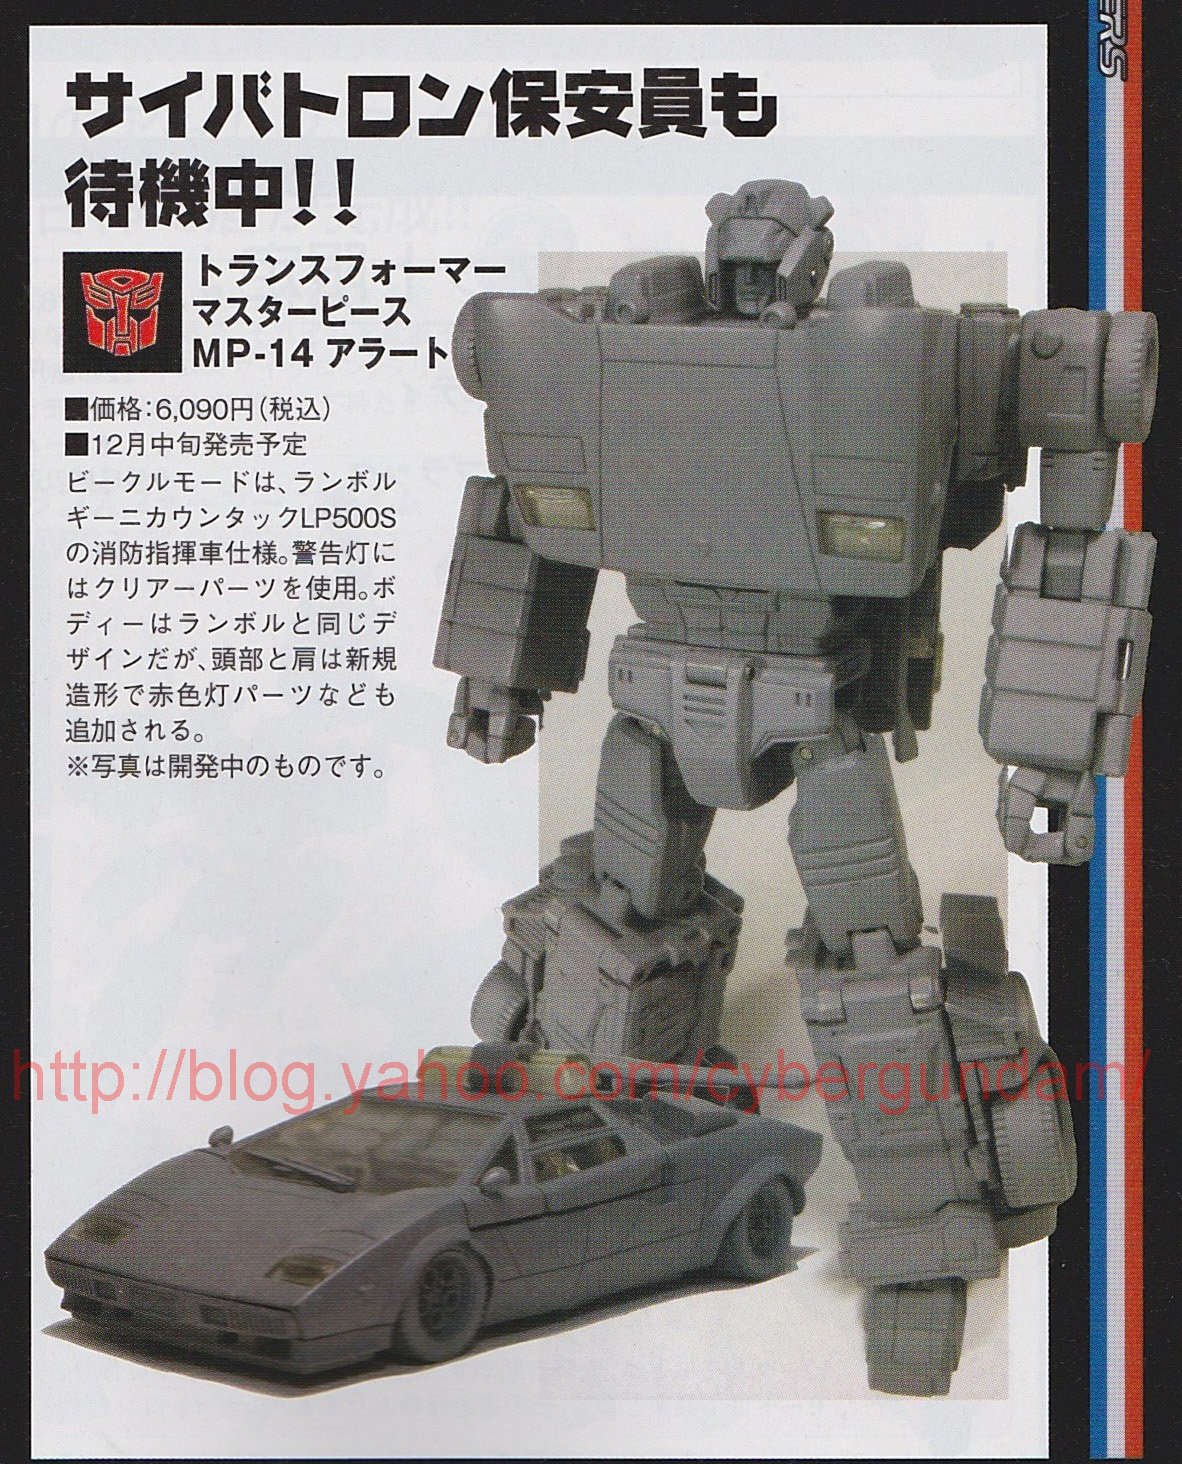 Transformers-Masterpiece-Sideswipe-02